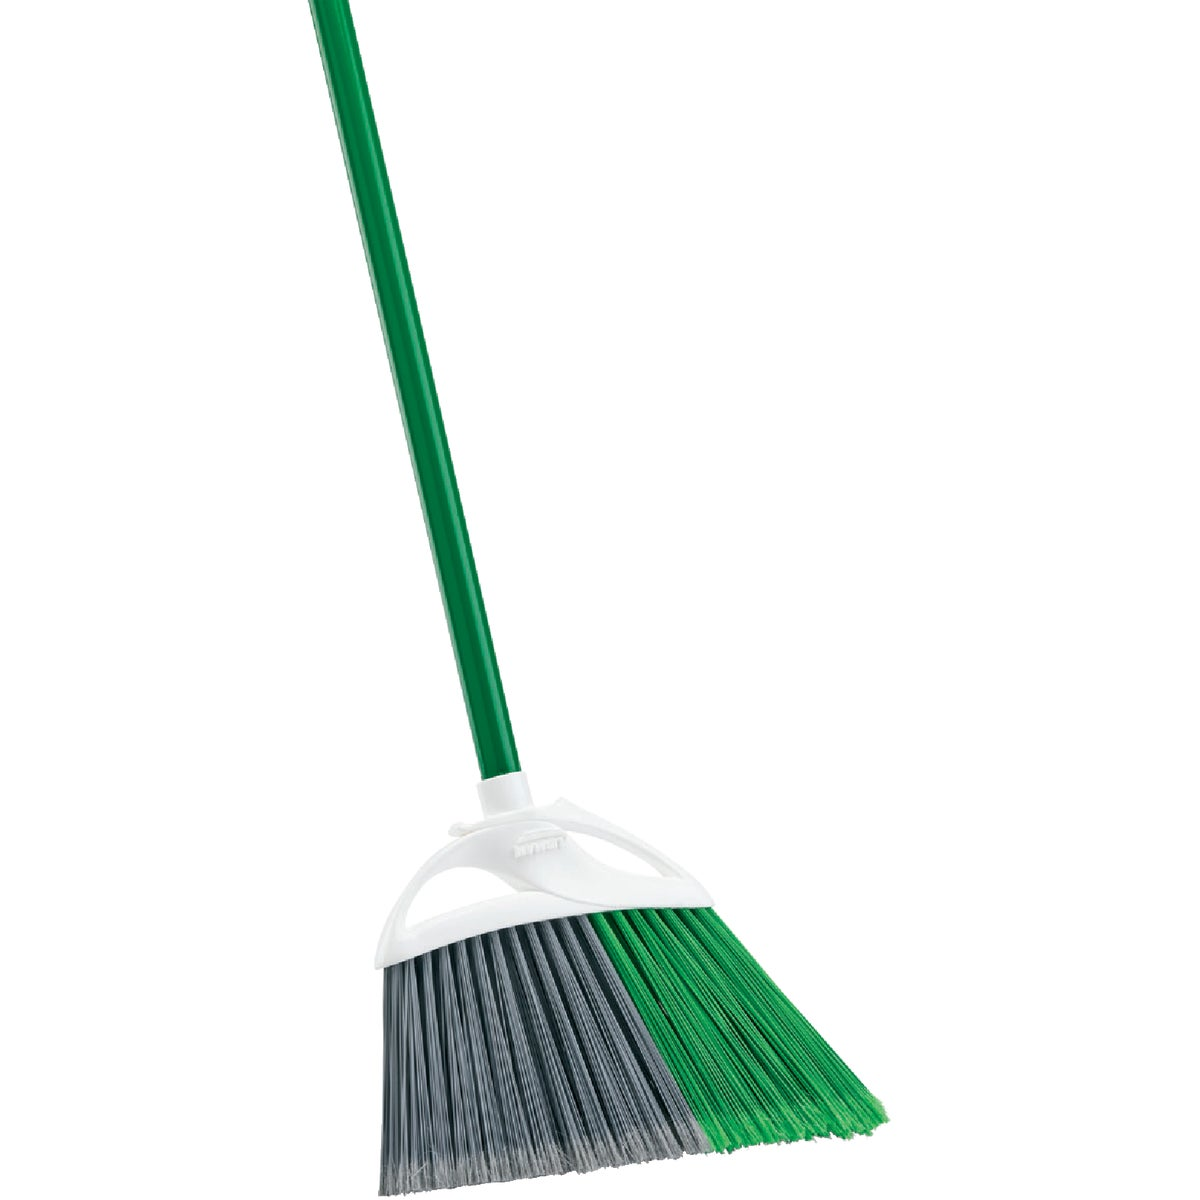 ANGLER BROOM